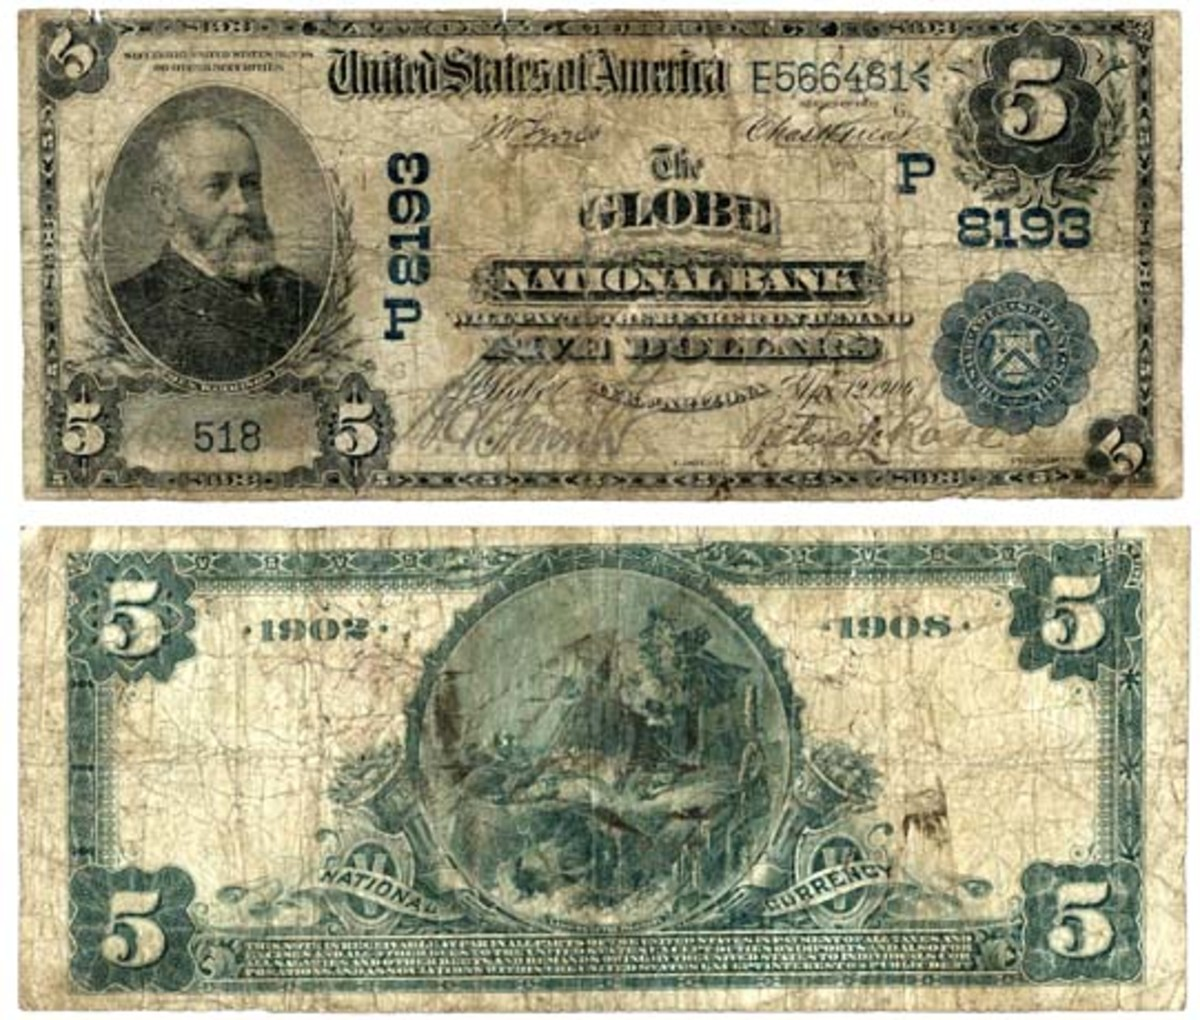 Sensational first reported $5 1902 date back from the Territory of Arizona.